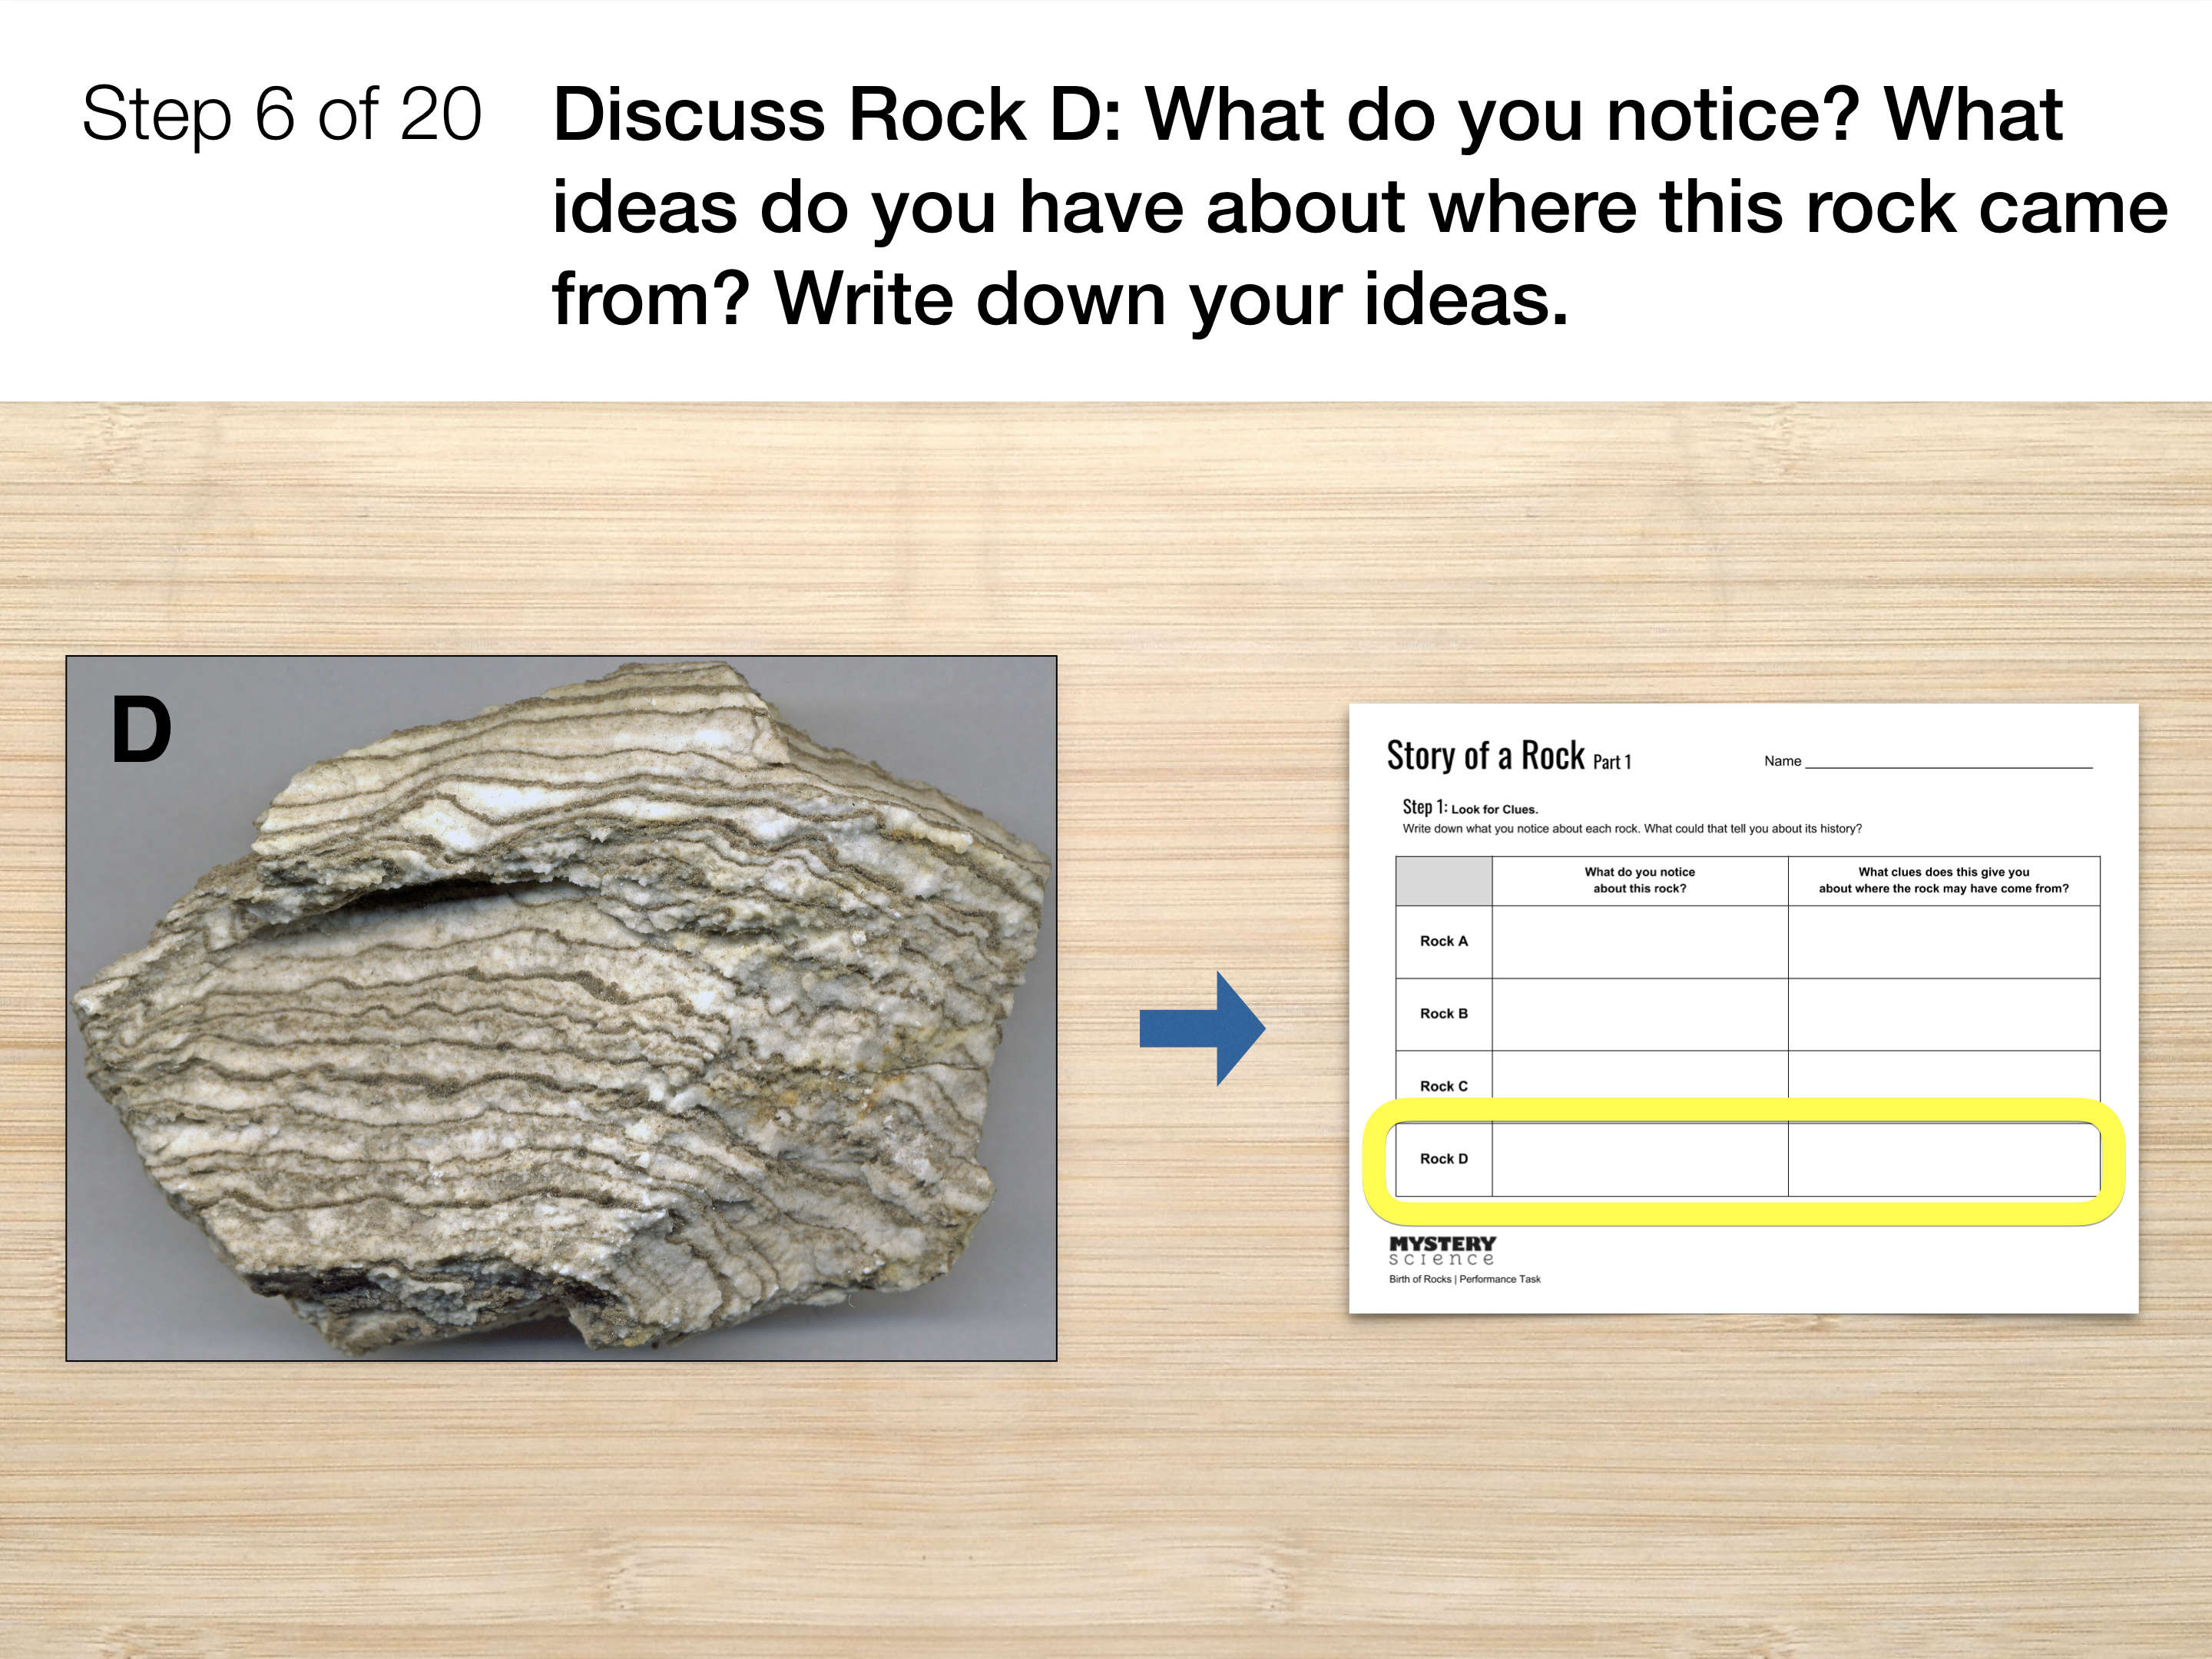 How can you figure out where a rock came from? Igneous Rocks Concept Map Inspiration on rock texture concept map, geologic time scale concept map, rock cycle concept map, groundwater concept map, sedimentary rock concept map, geology concept map, gas concept map, vein concept map, types of rocks concept map, quartz concept map, fracture concept map, ion concept map, landform concept map, ionic compound concept map, composition concept map, pangaea concept map, crystal system concept map, magma concept map, pressure concept map, lava concept map,